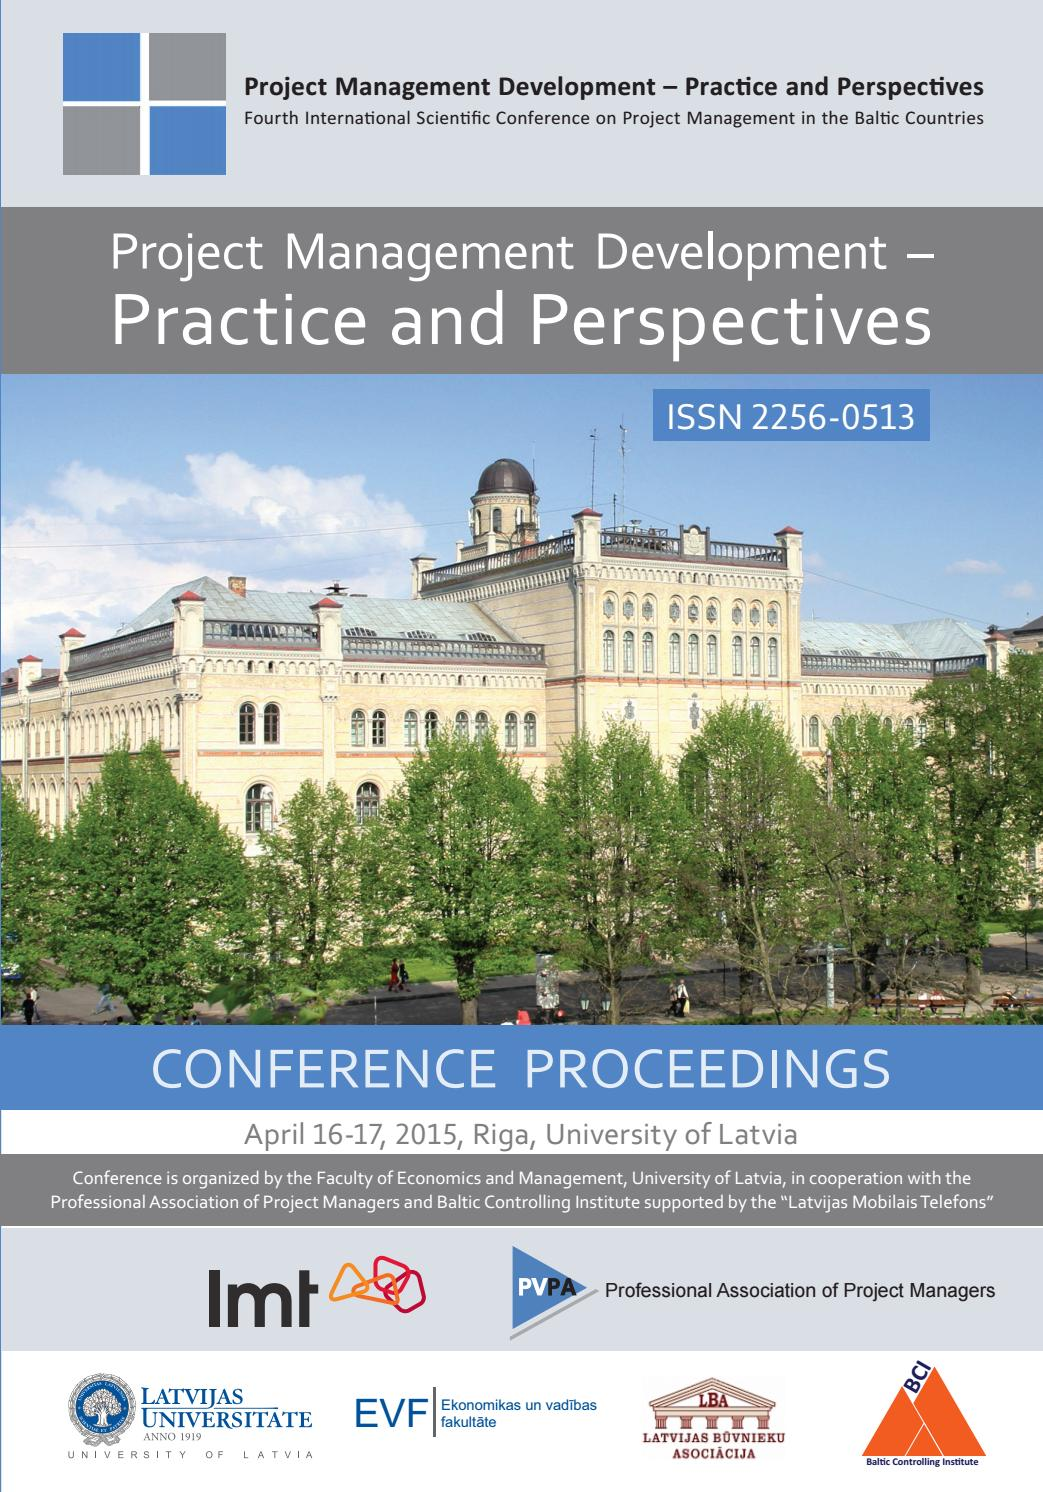 Project Management Development – Practice and Perspectives